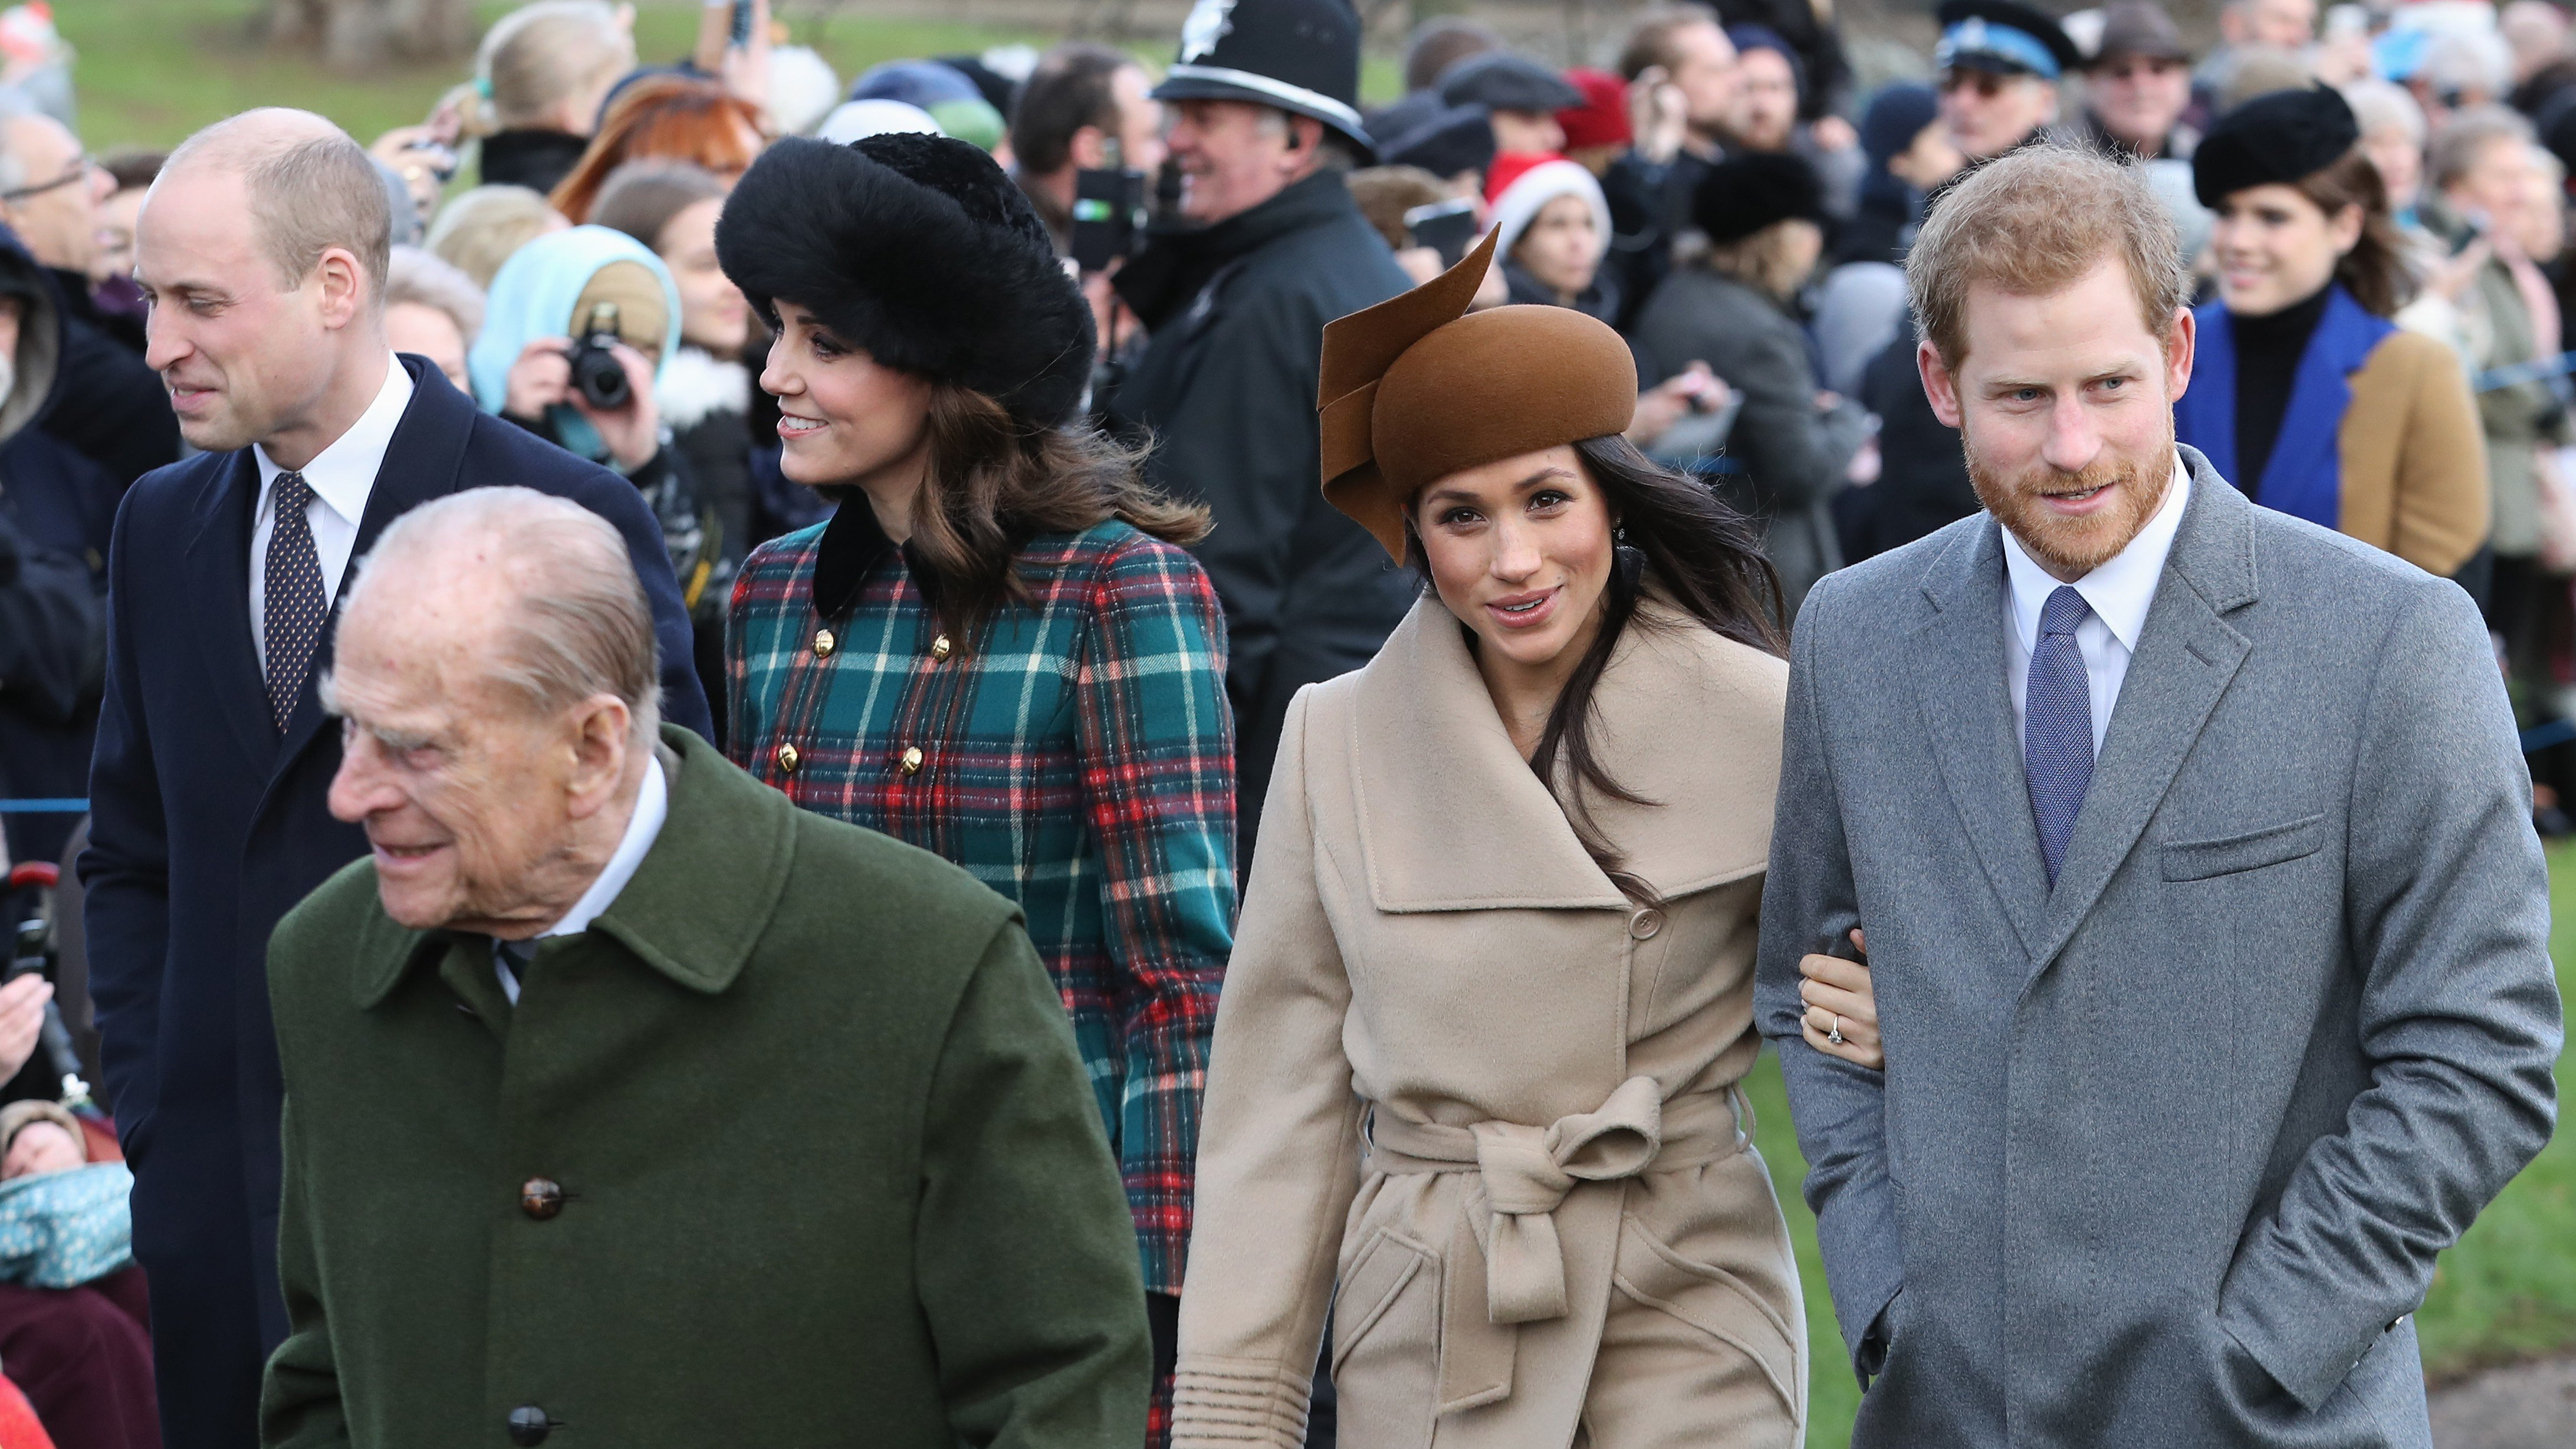 The Queen is Reportedly Personally Peeved at Meghan Markle's Father